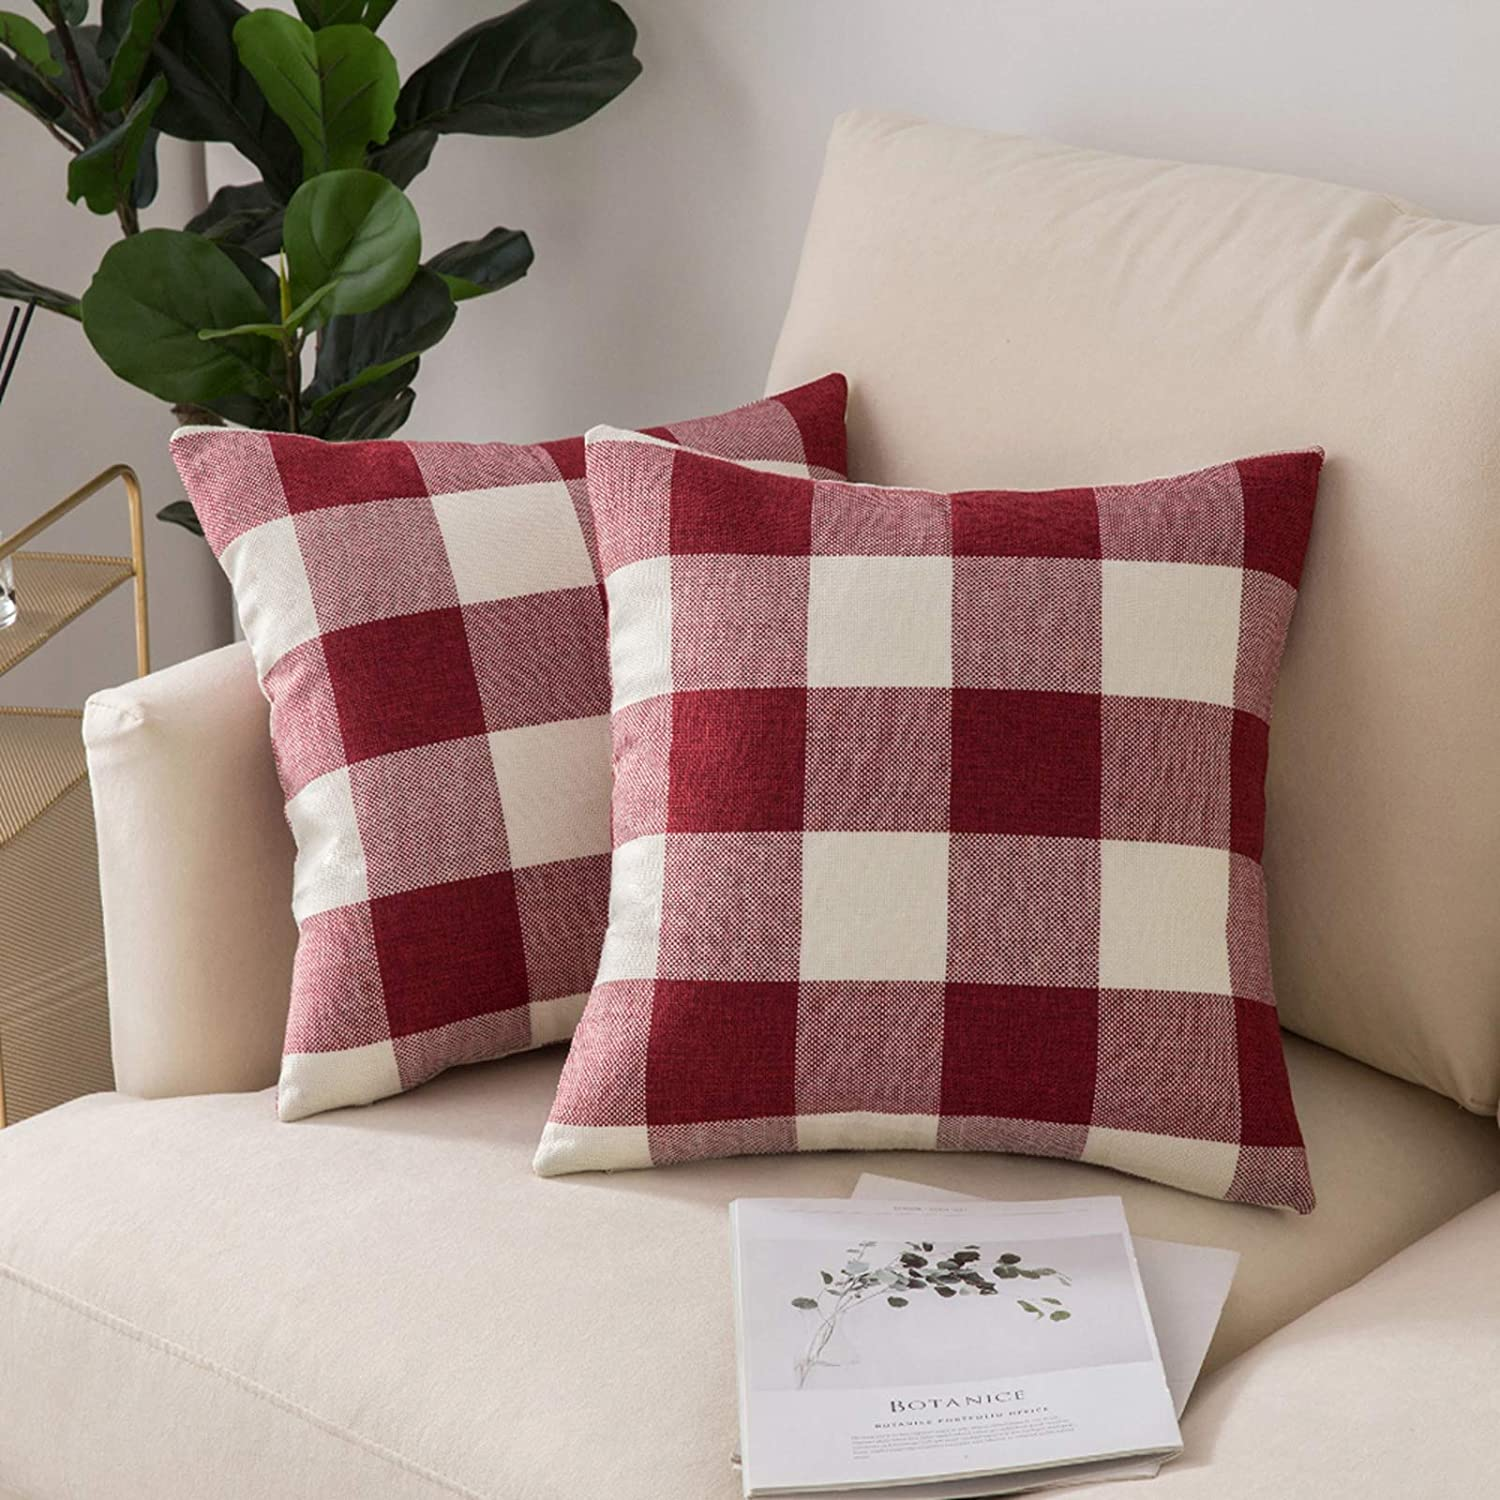 Woaboy Sale Pack of 2 Buffalo Check Plaids SEAL limited product Cov Throw Farmhouse Pillow